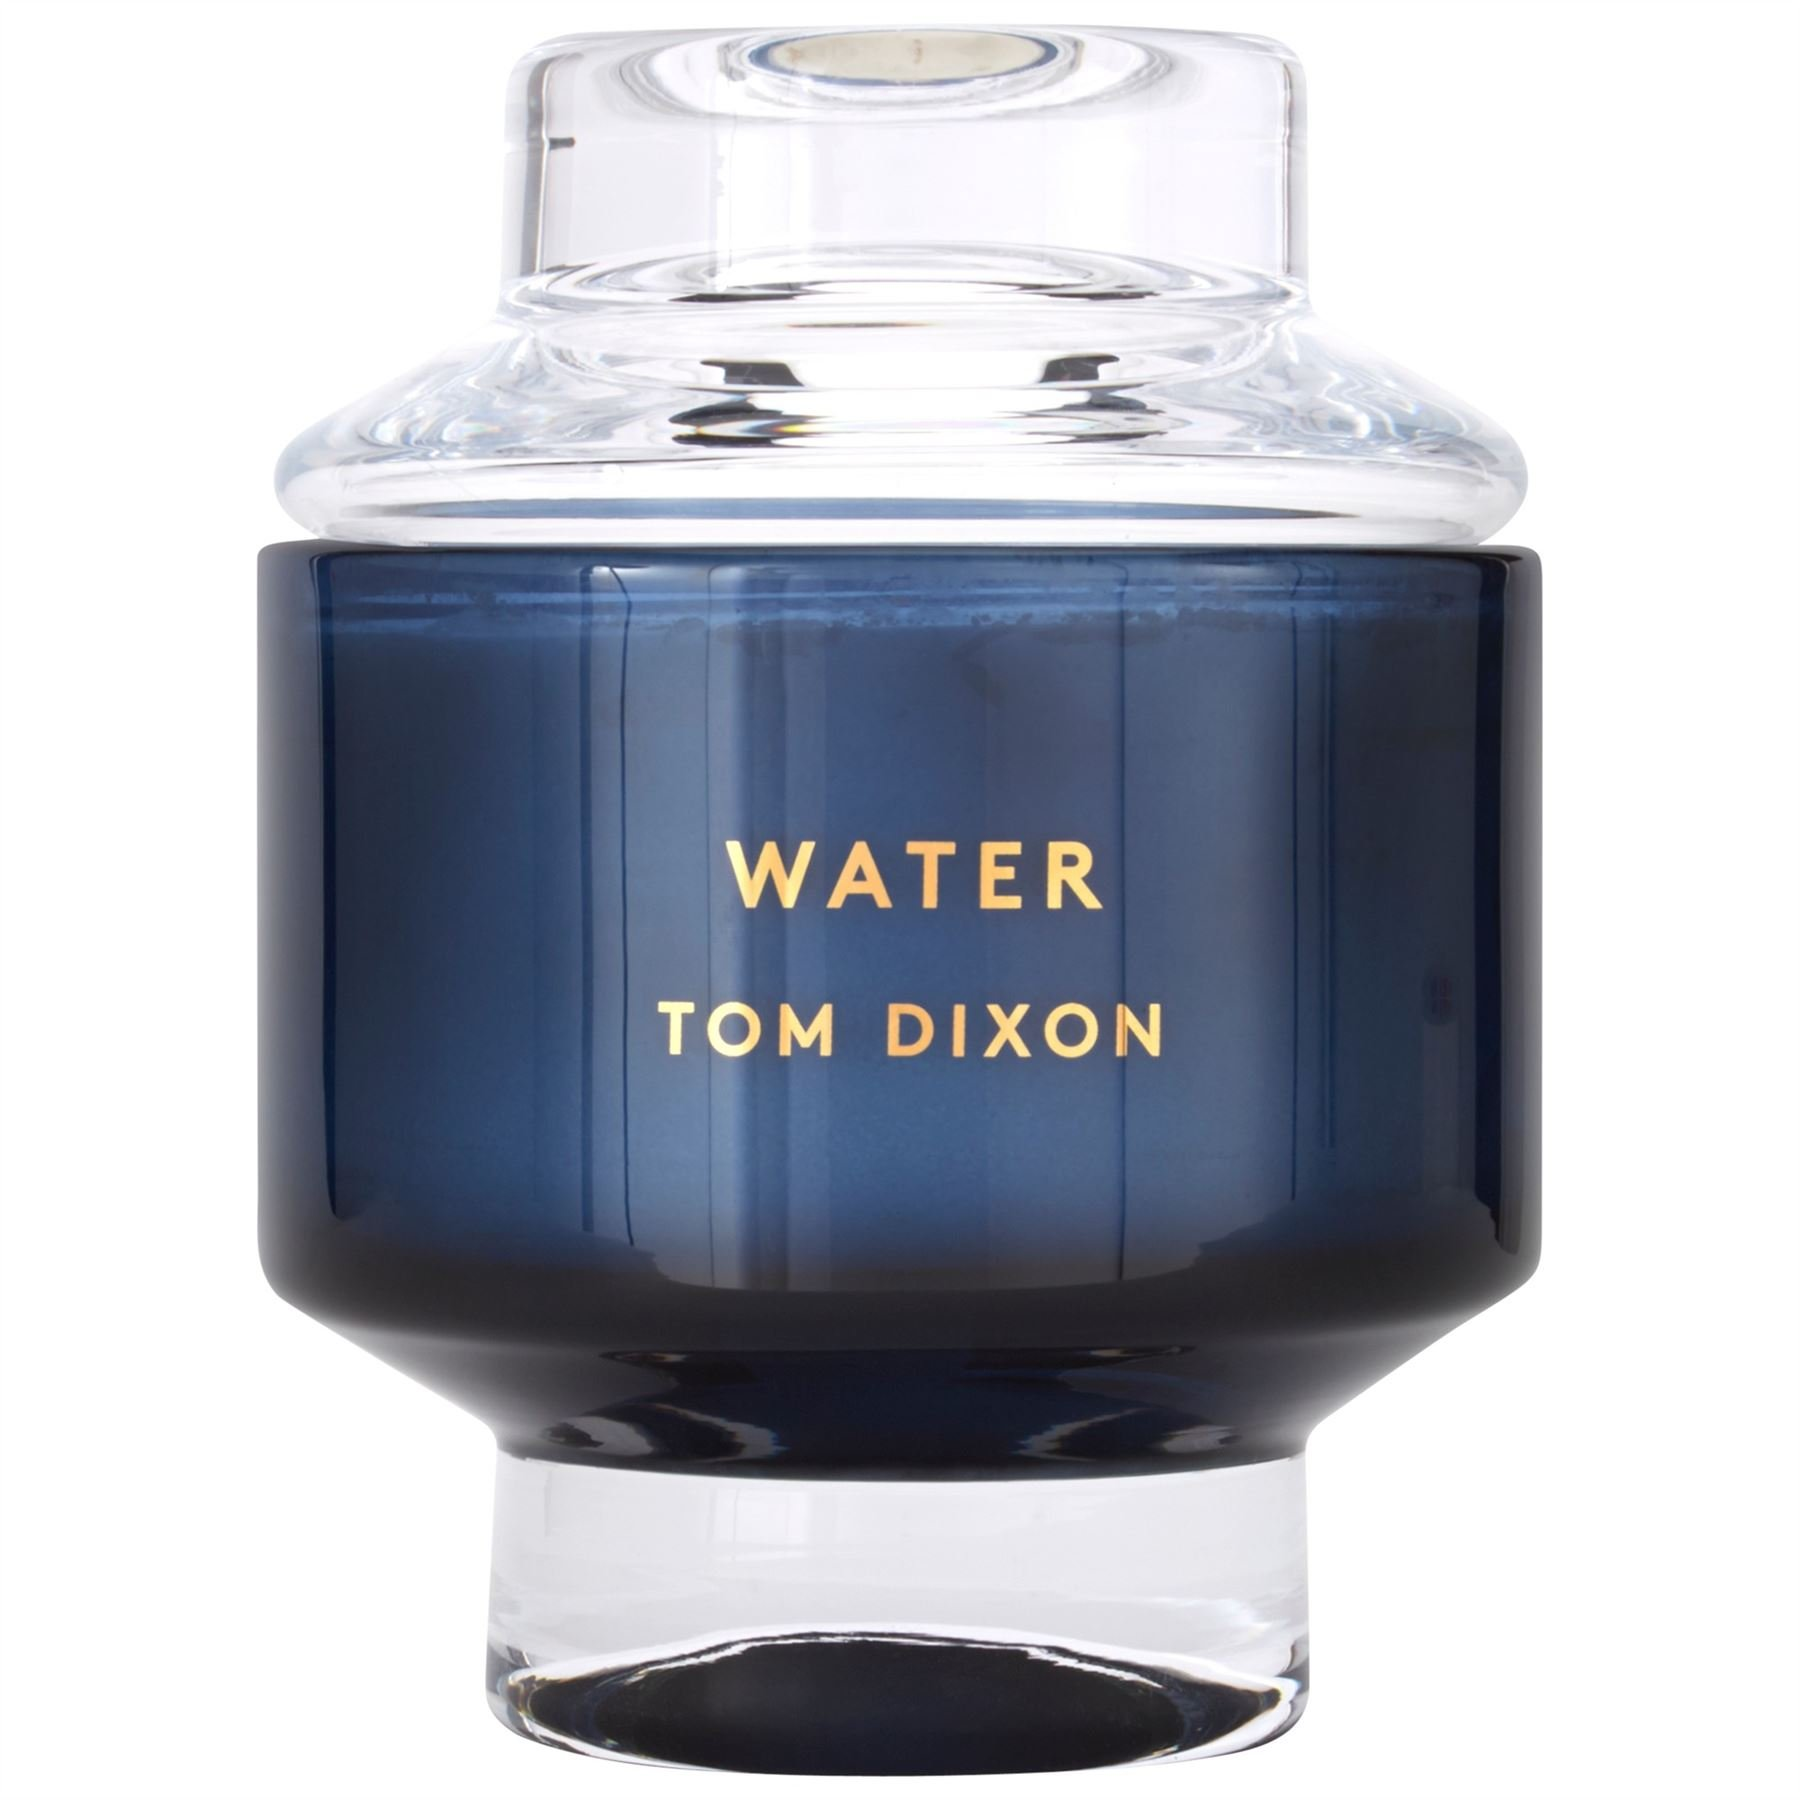 Buy Water Scented Candle Now!